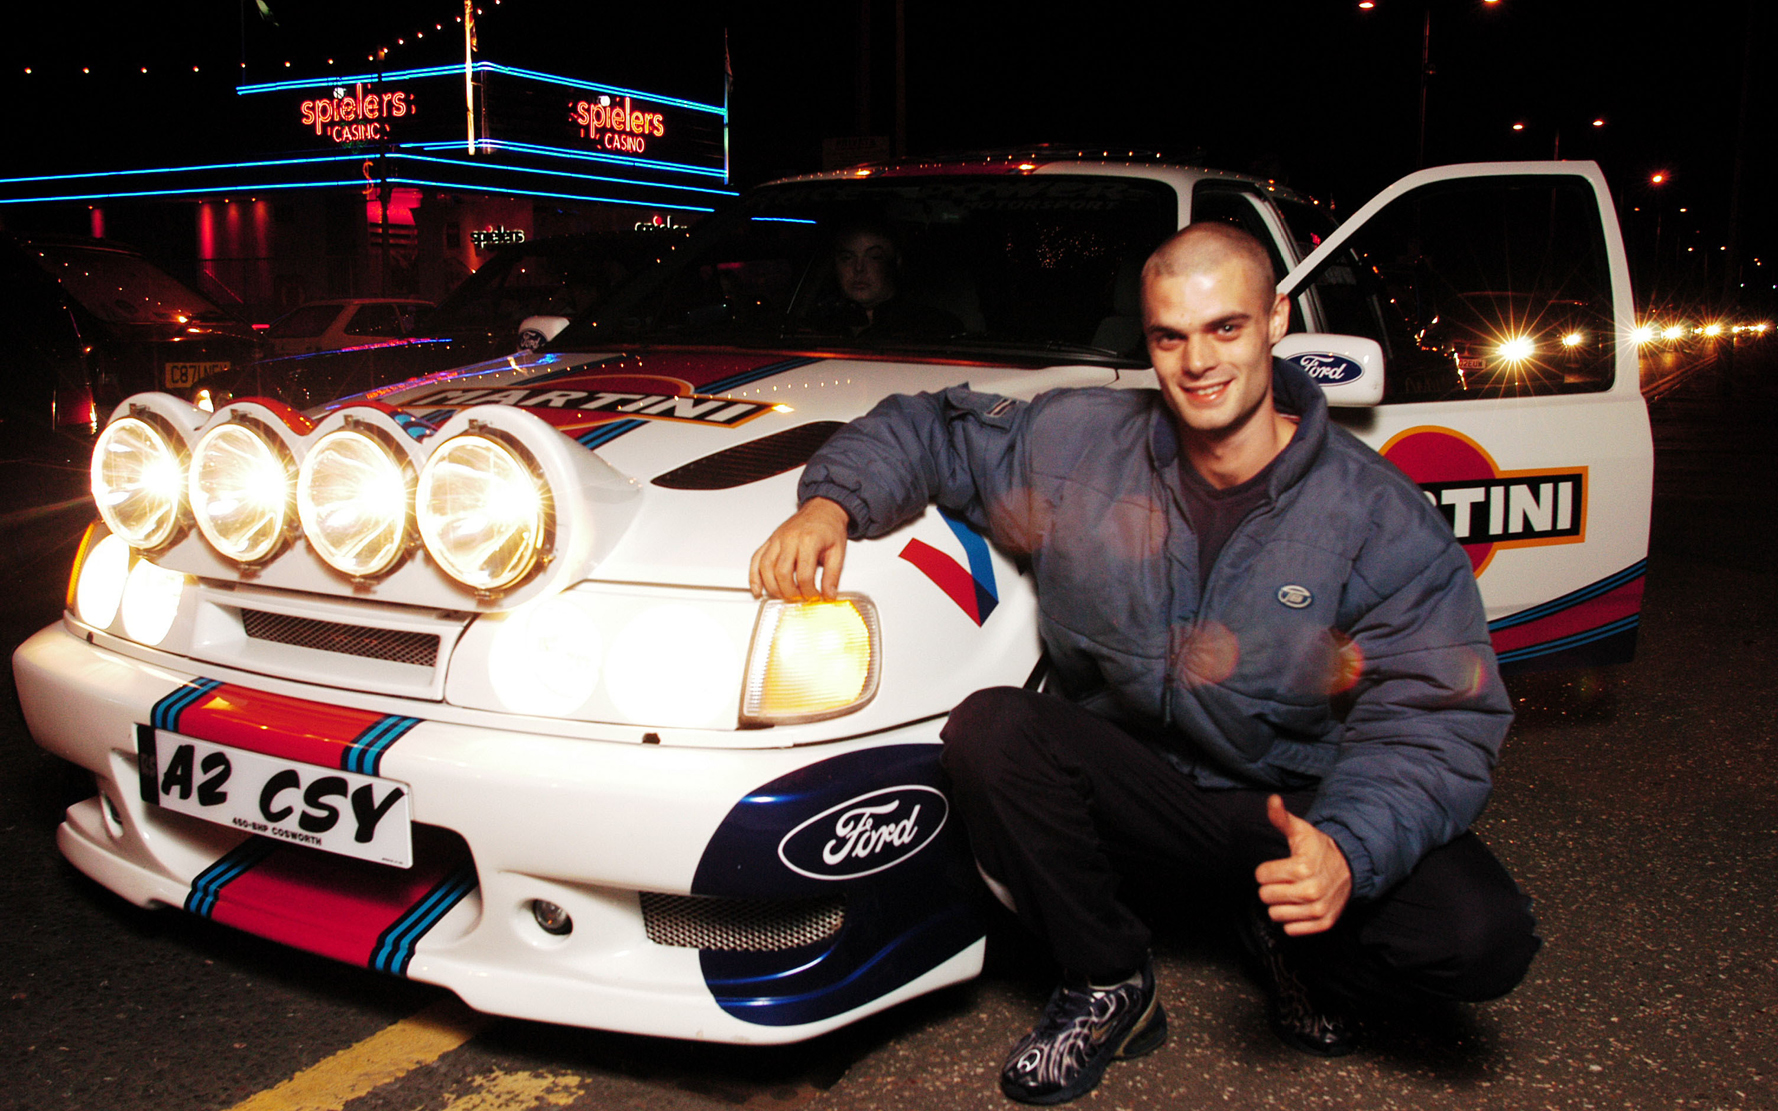 A boy racer posing by his customised Cosworth, Southend, Basildon, 2002   ©   Nick Cunard   / PYMCA